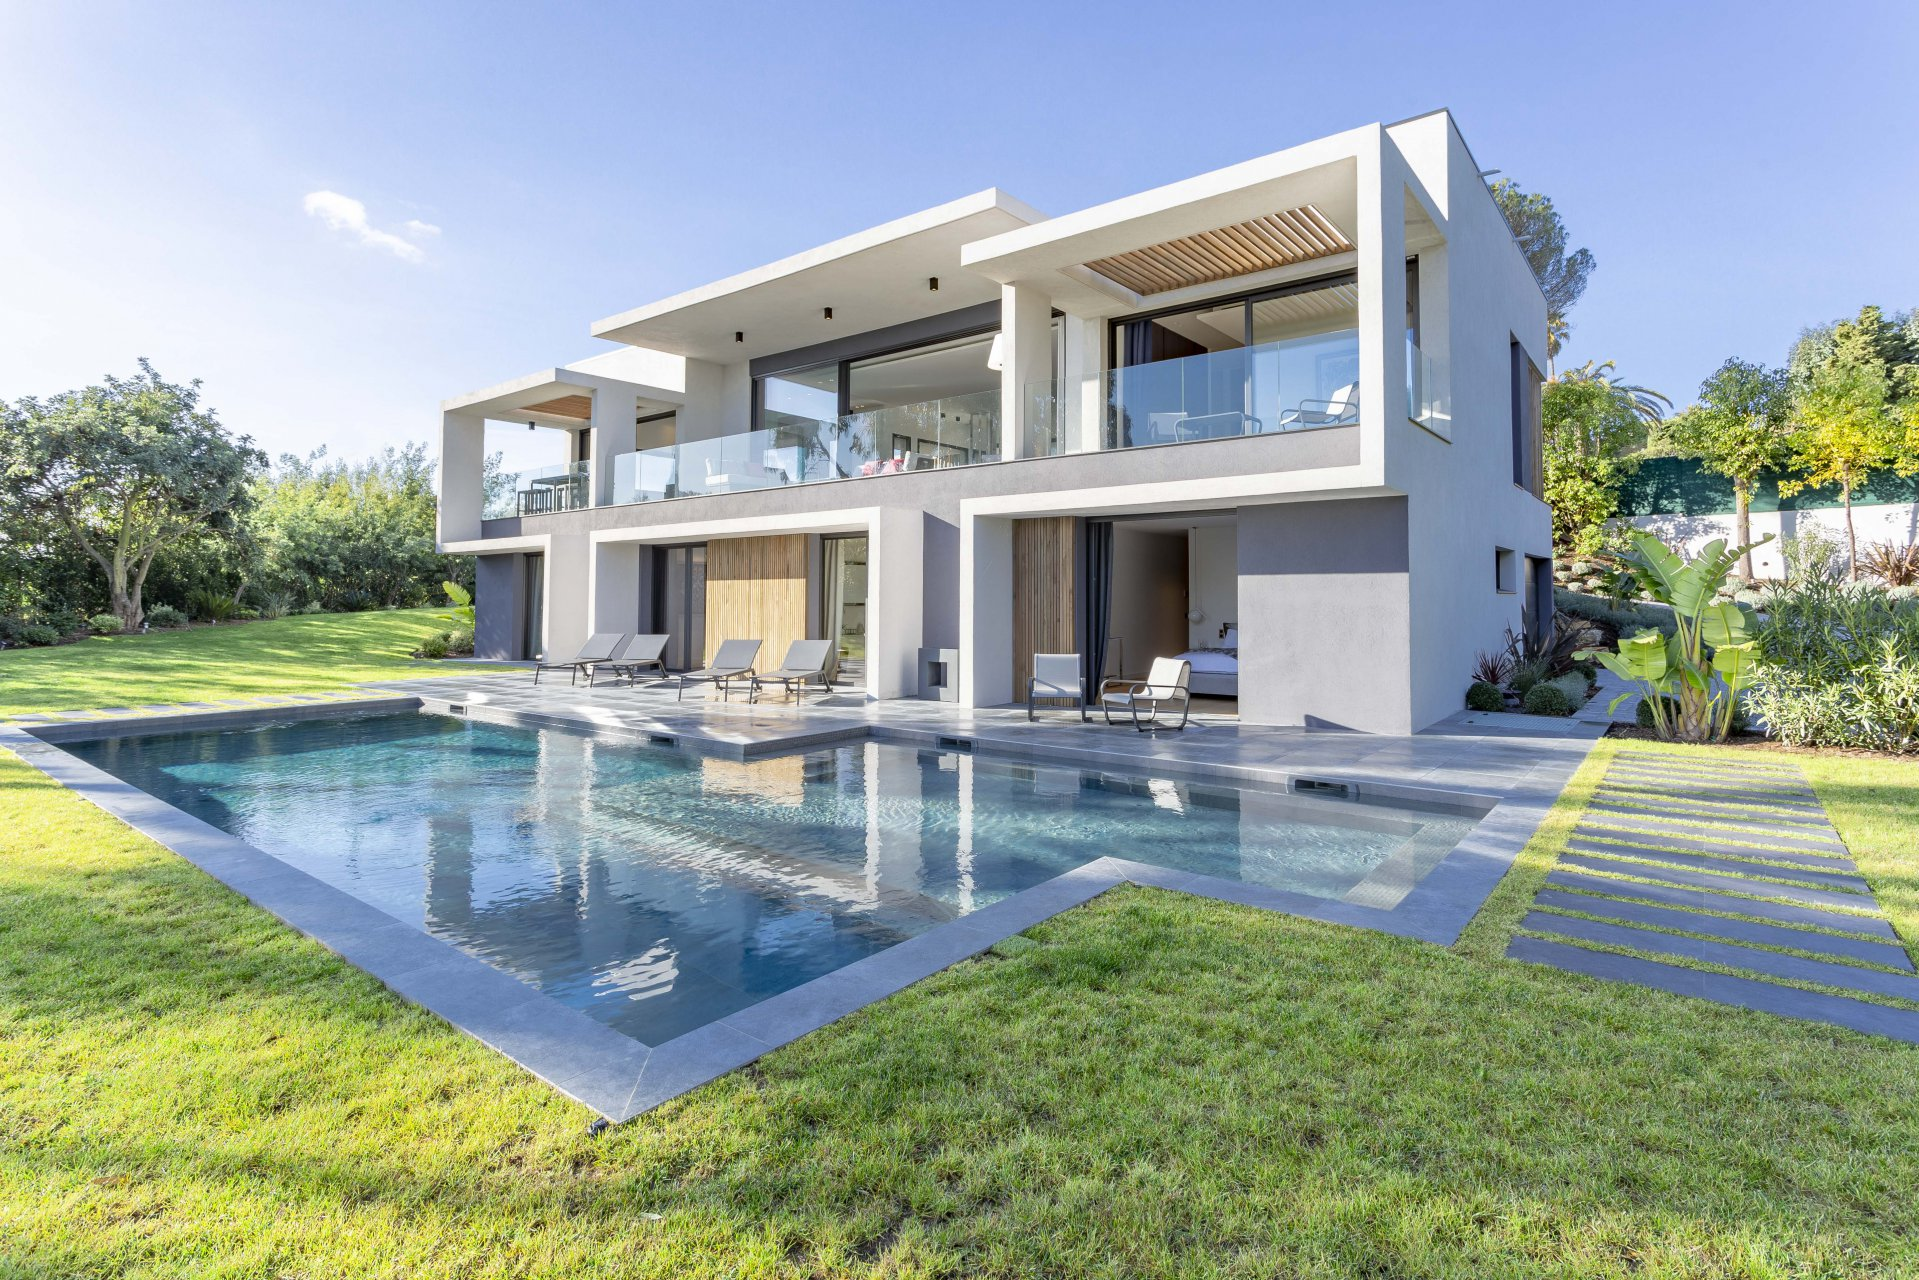 SUPER CANNES - BEAUTIFUL CONTEMPORARY VILLA